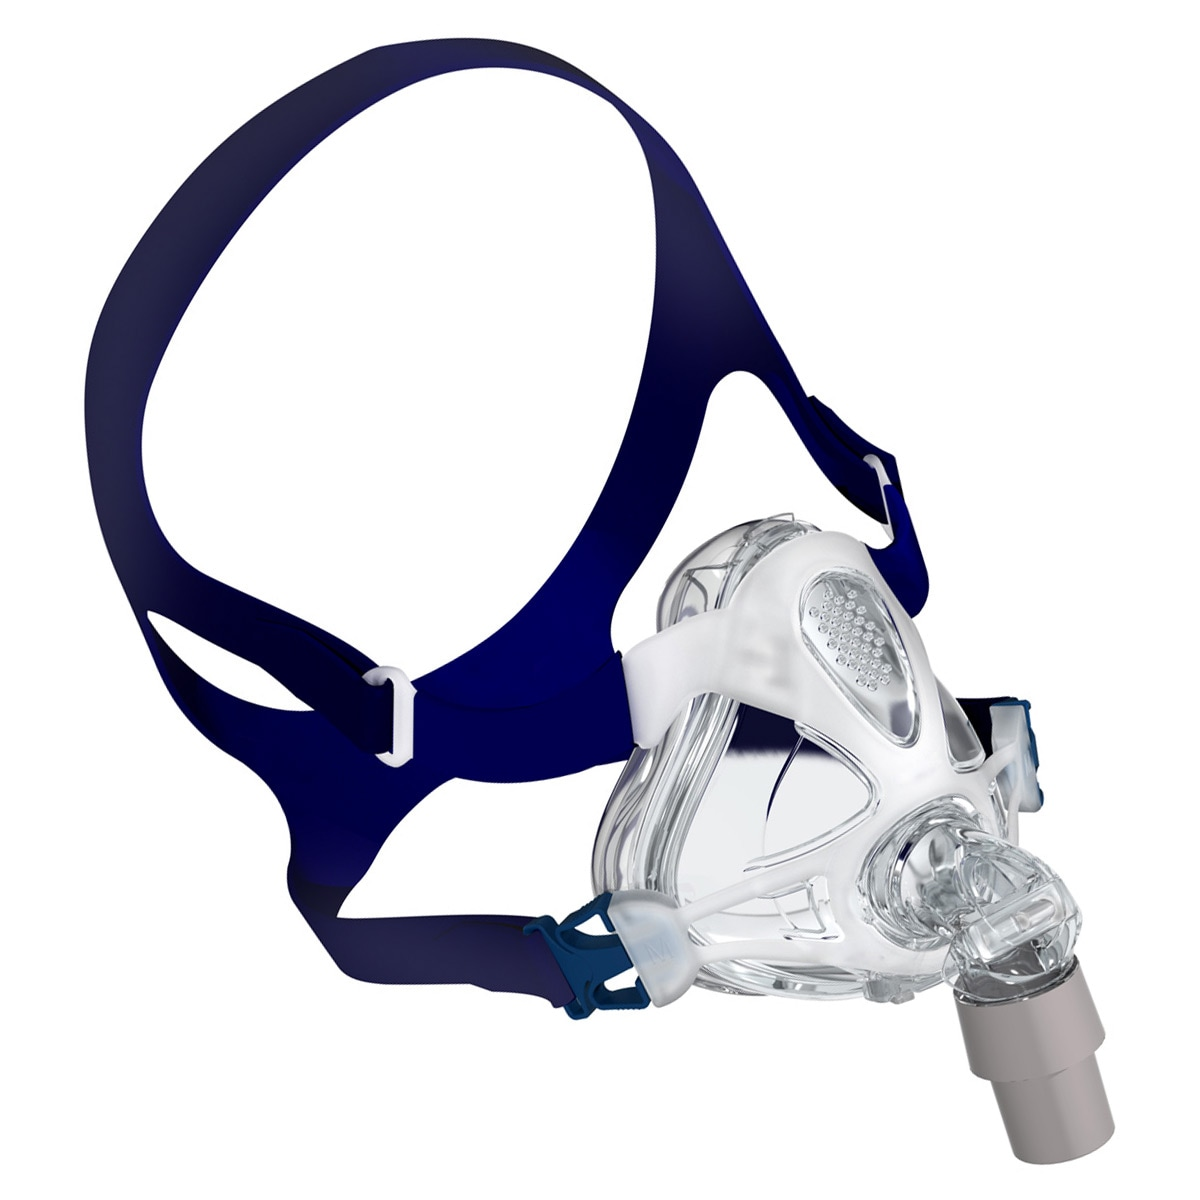 Quattro™ FX Full Face CPAP/BiLevel Mask with Headgear